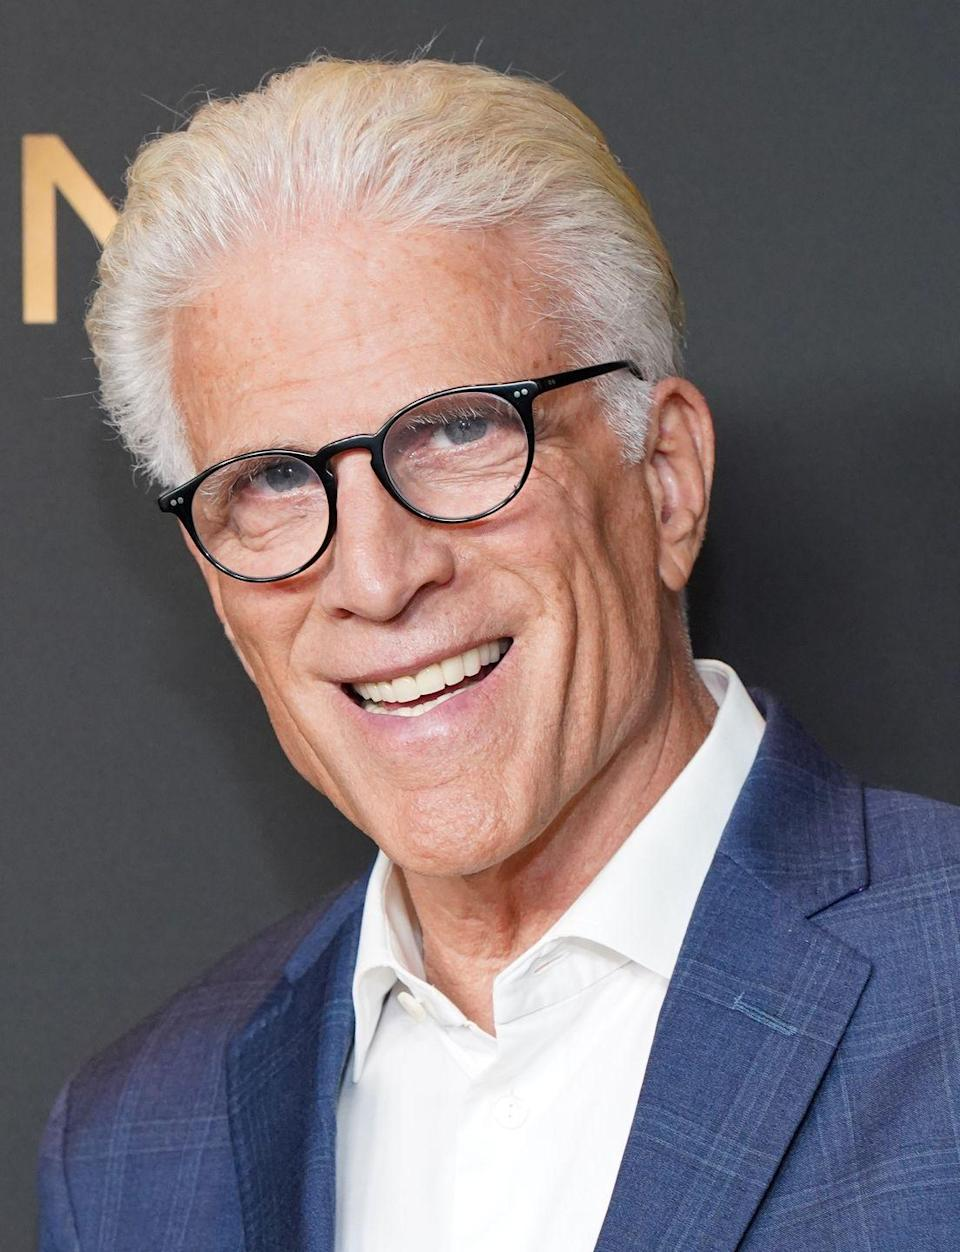 <p>The actor has made a television comeback on NBC's <em>The Good Place </em>in recent years and not much has changed about the actor, except his white-gray head of hair. </p>